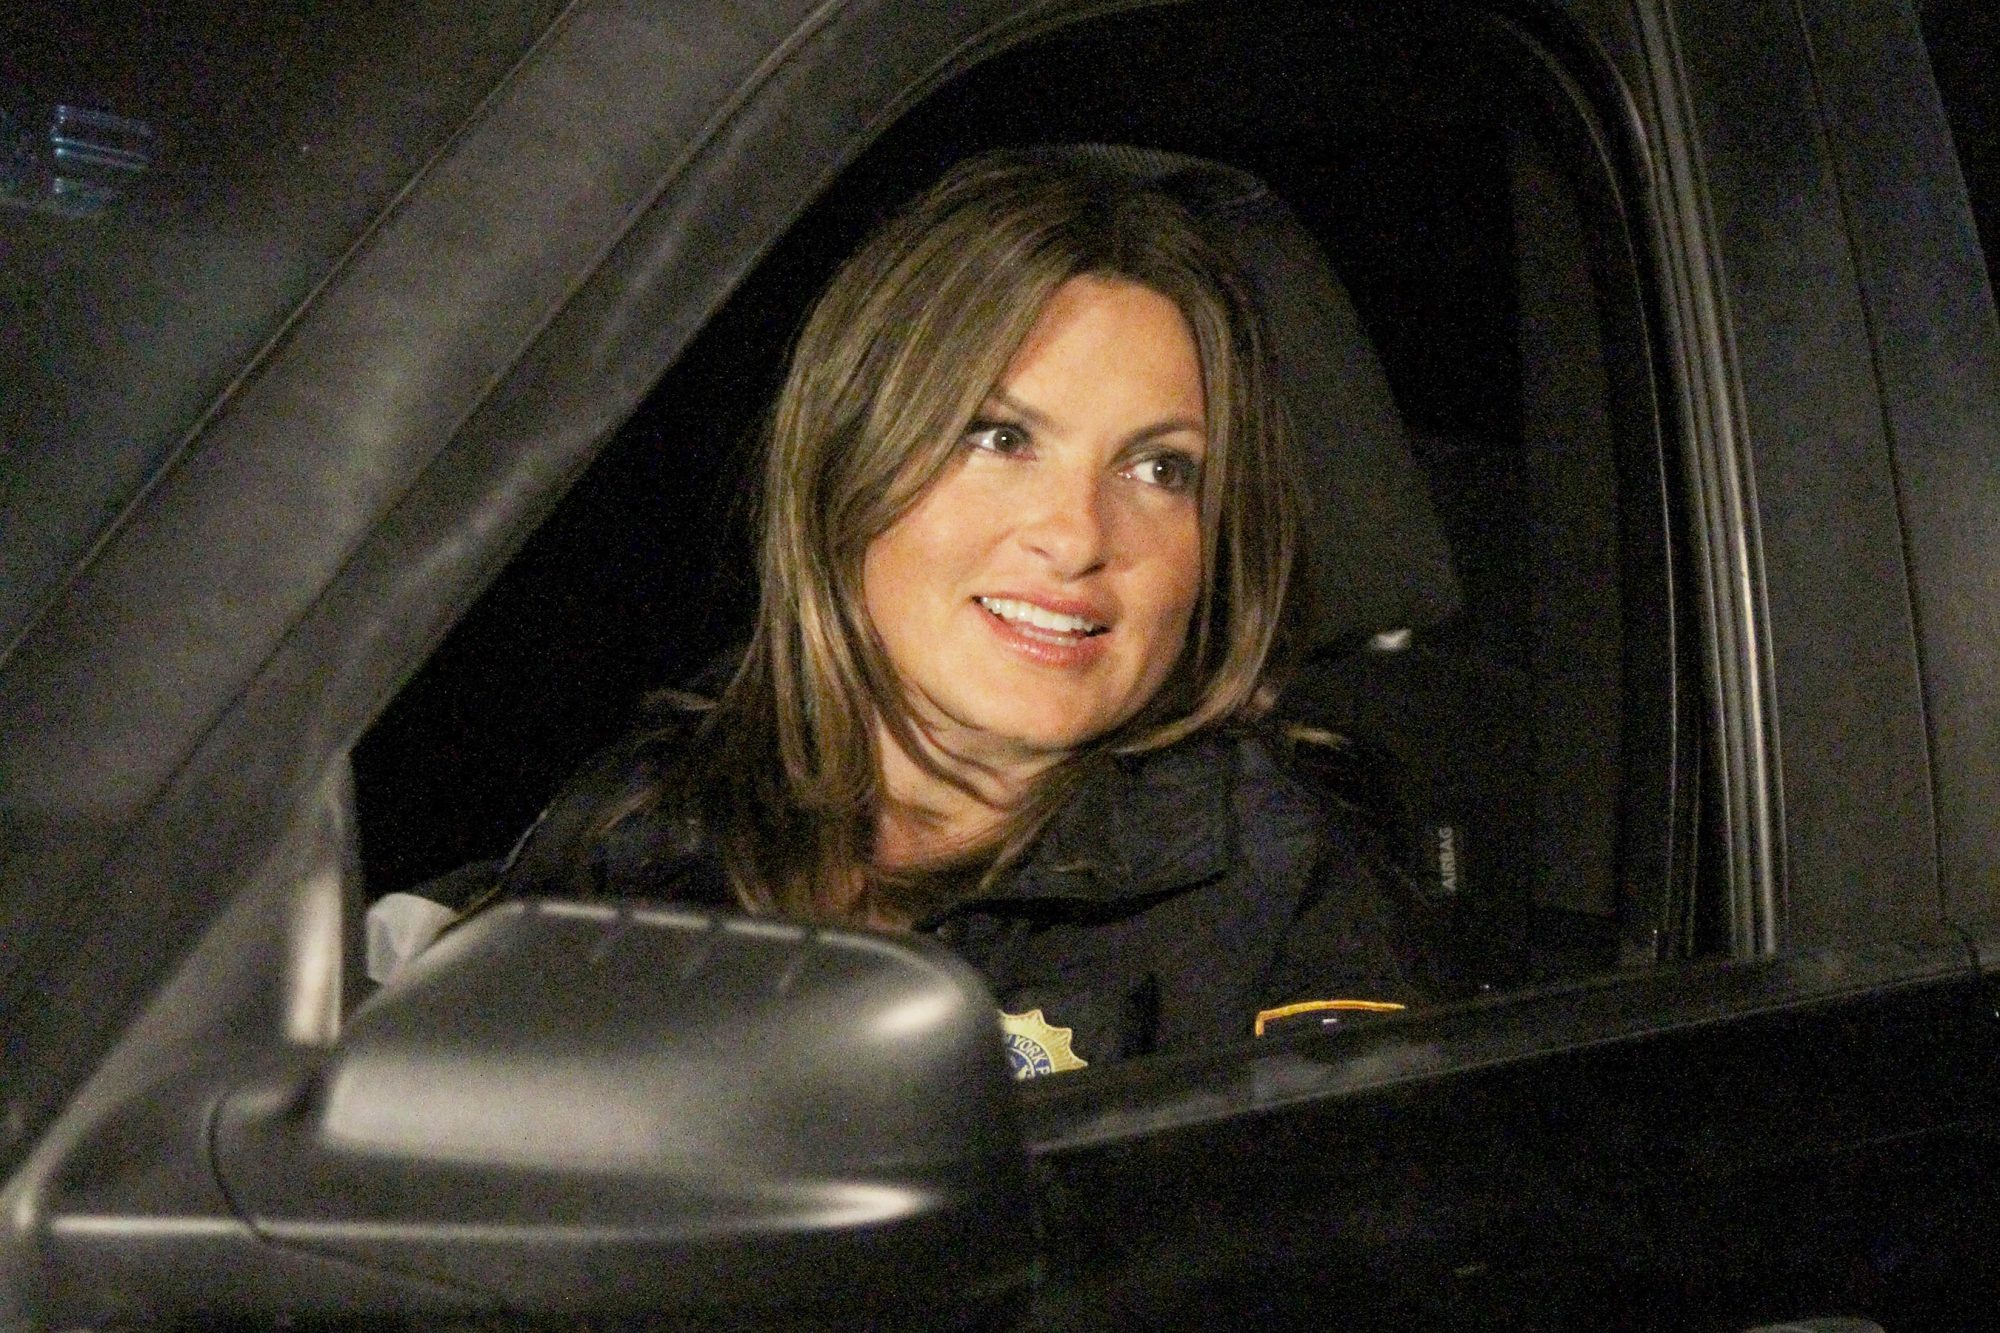 Mariska Hargitay, Ice-T and Peter Scanavino Filming Law & Order: Special Victims Unit